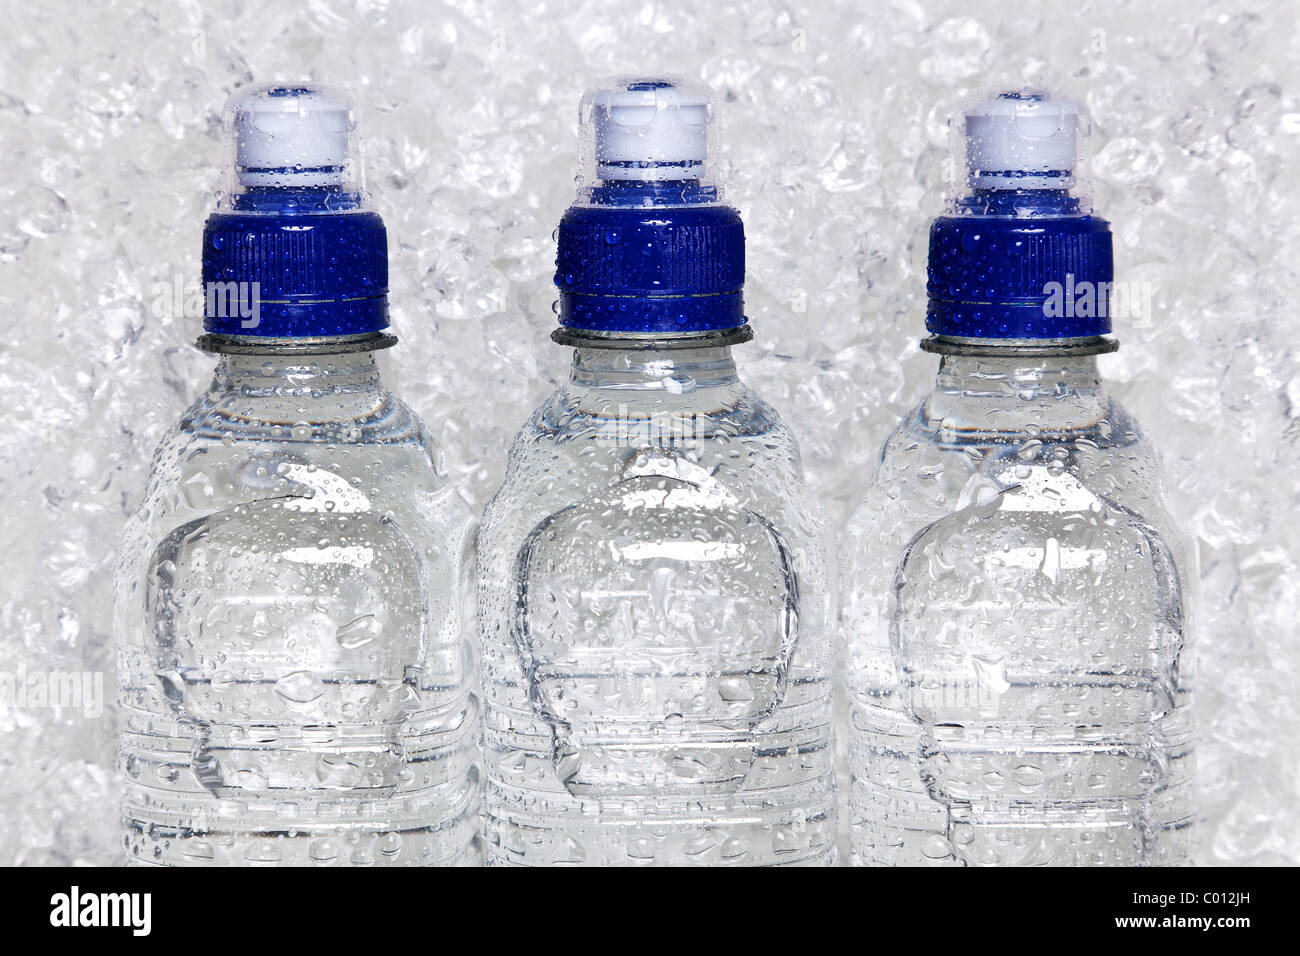 Photo of cold mineral water in plastic bottles on crushed ice - Stock Image